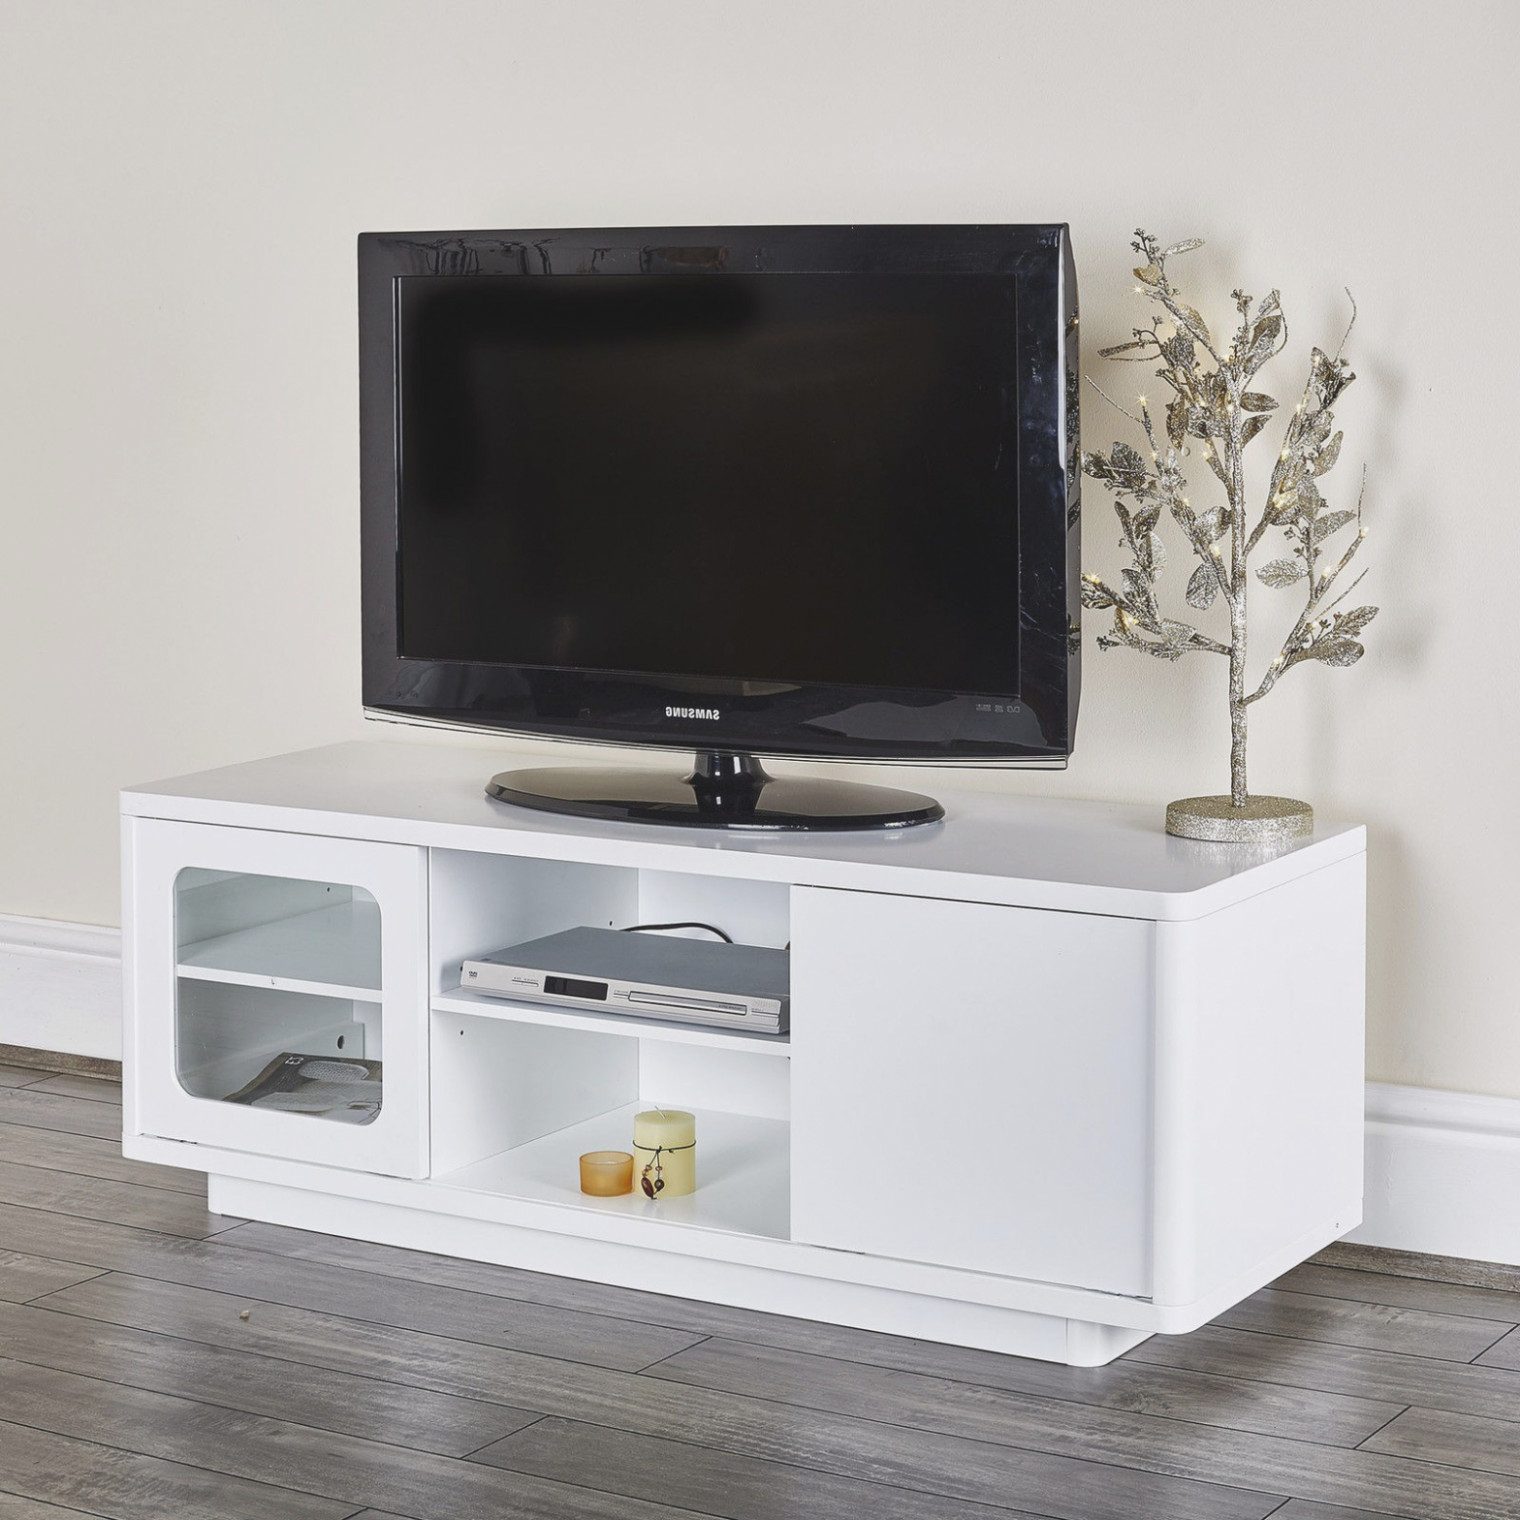 Most Recently Released Skinny Tv Stands Within Tv Stands And Entertainment Centers : Long Narrow Tv Stand Media (View 20 of 20)